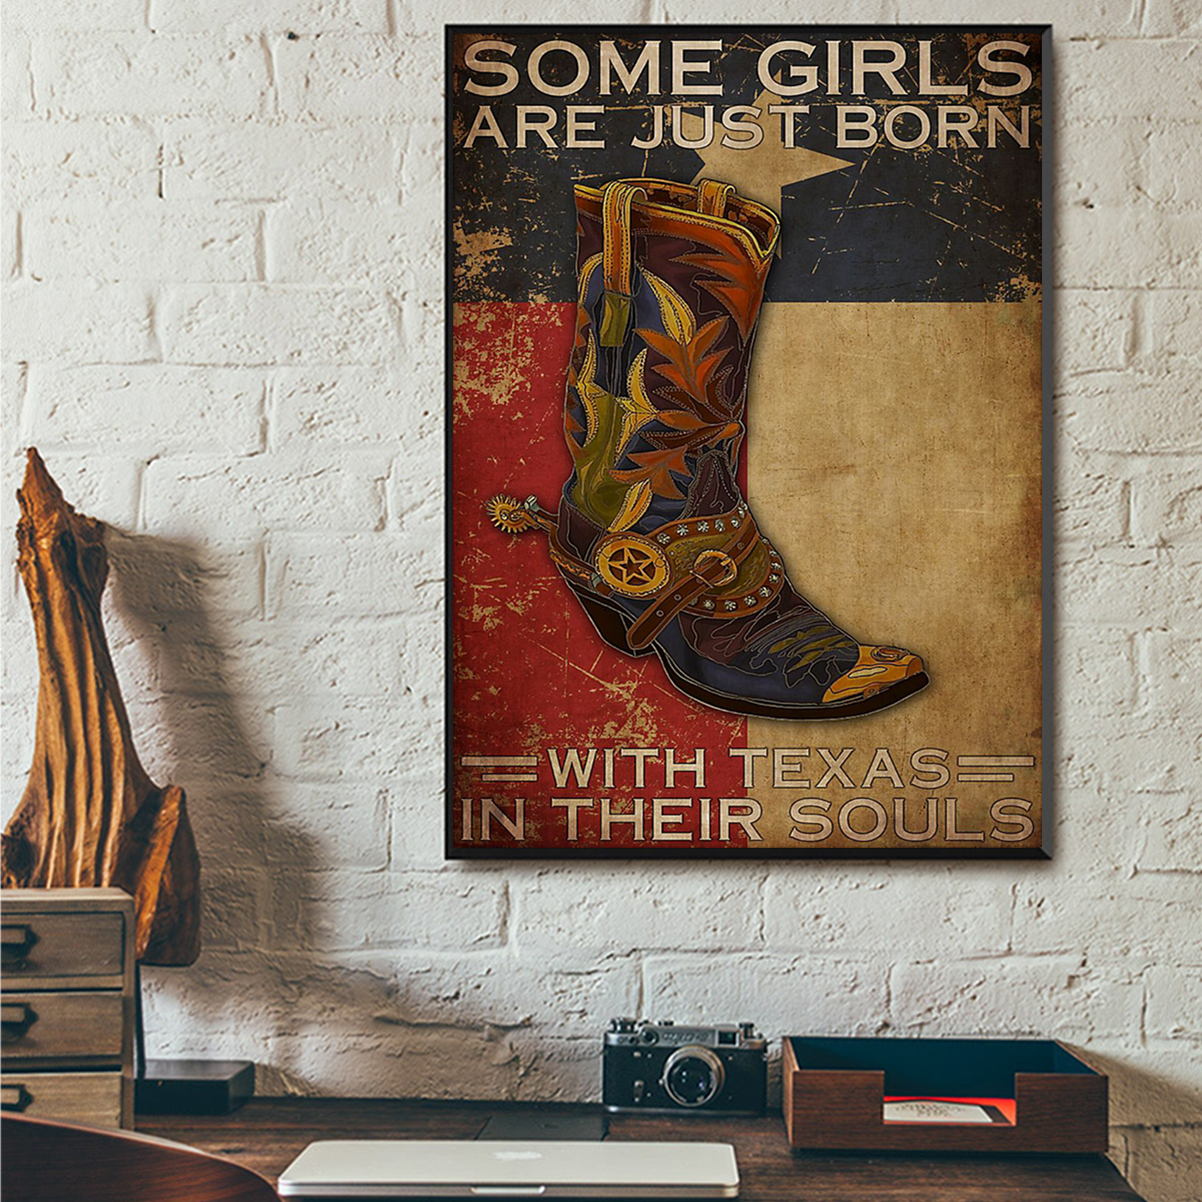 Some girl are just born with texas in their souls poster A1